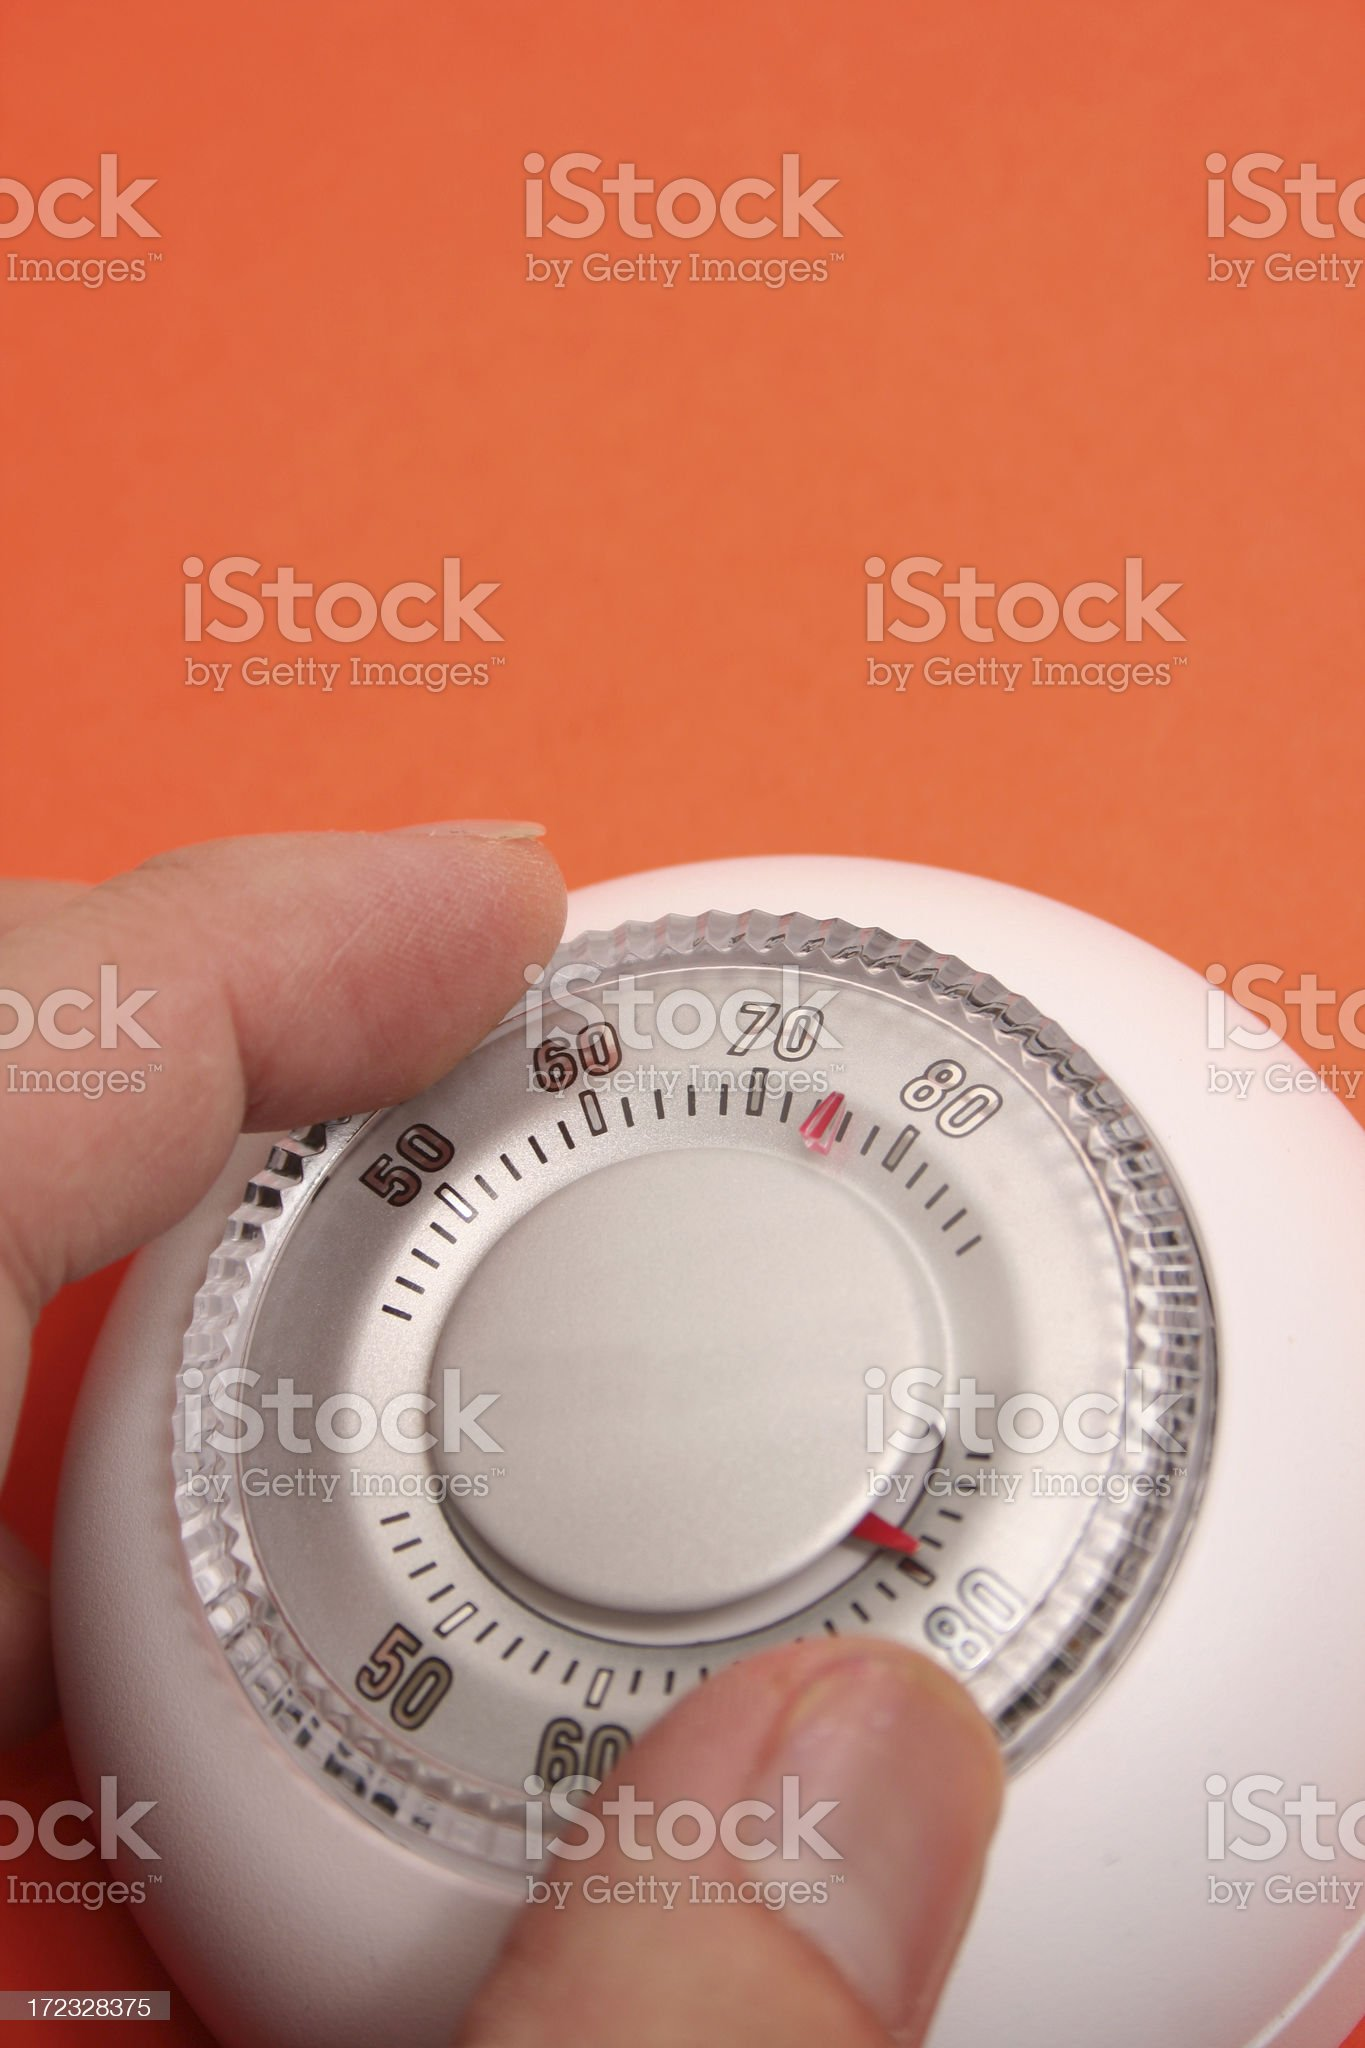 thermostats and thermometer royalty-free stock photo